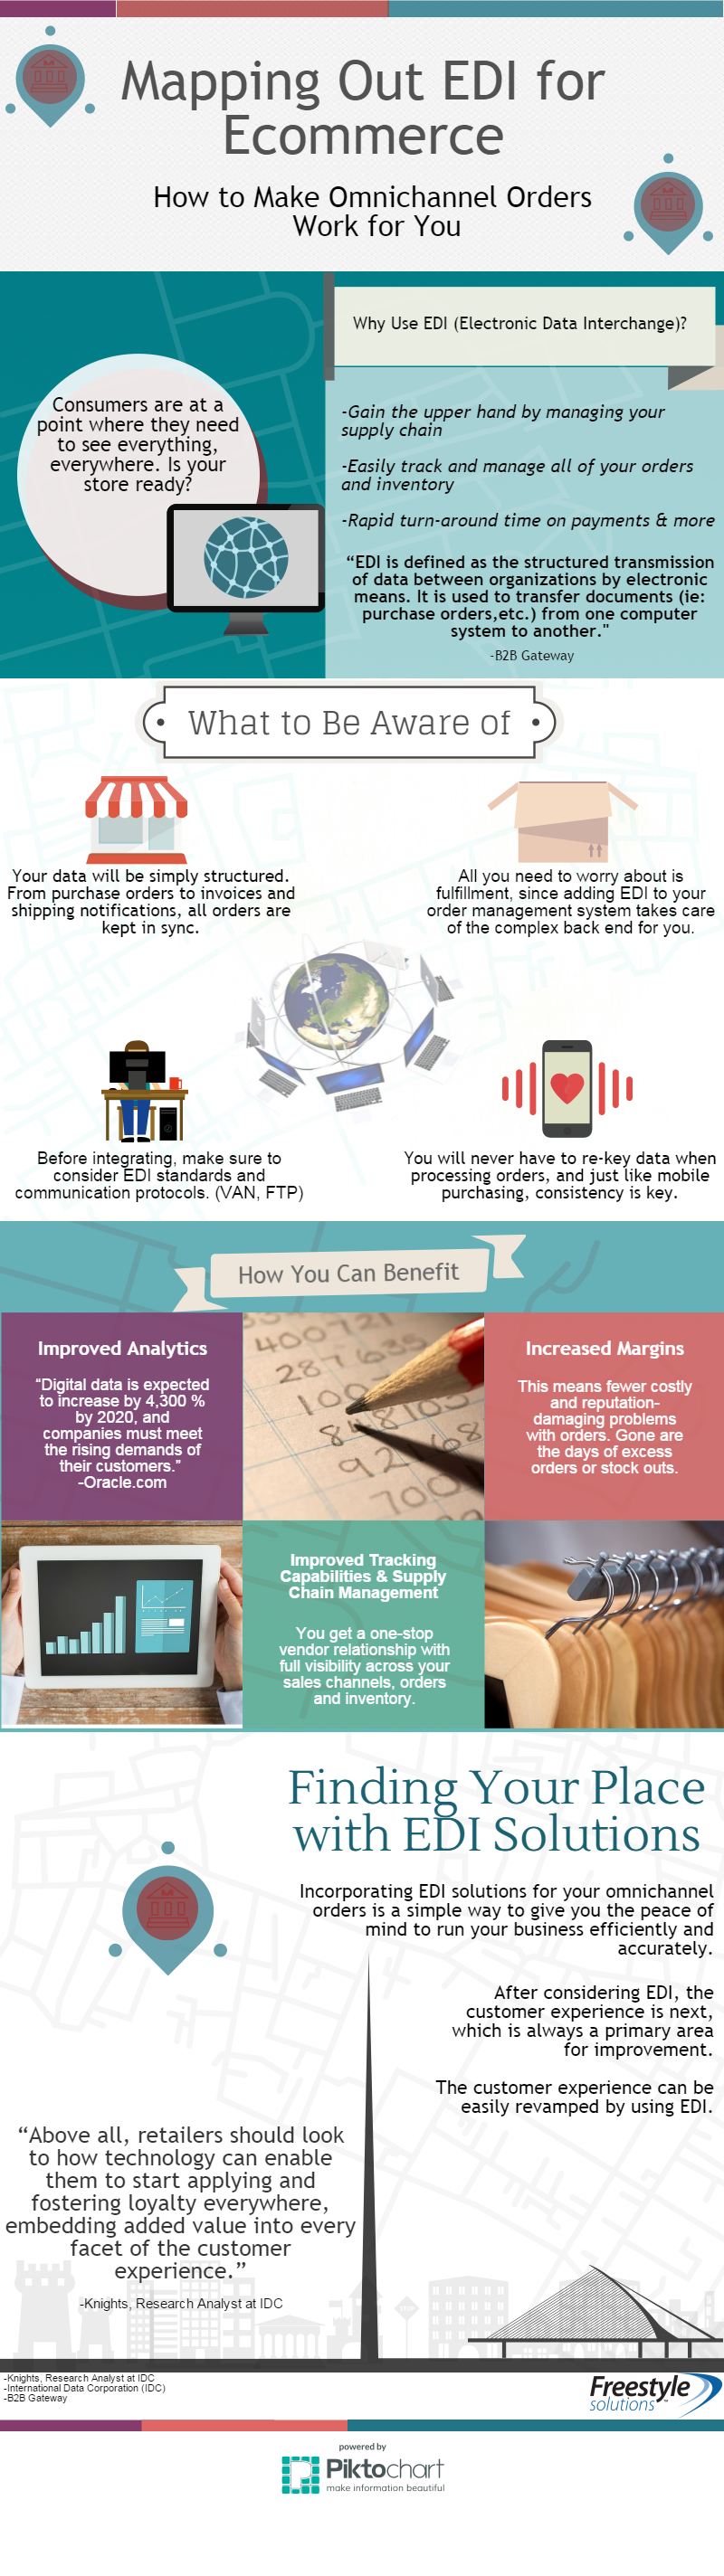 edi solutions for ecommerce infographic